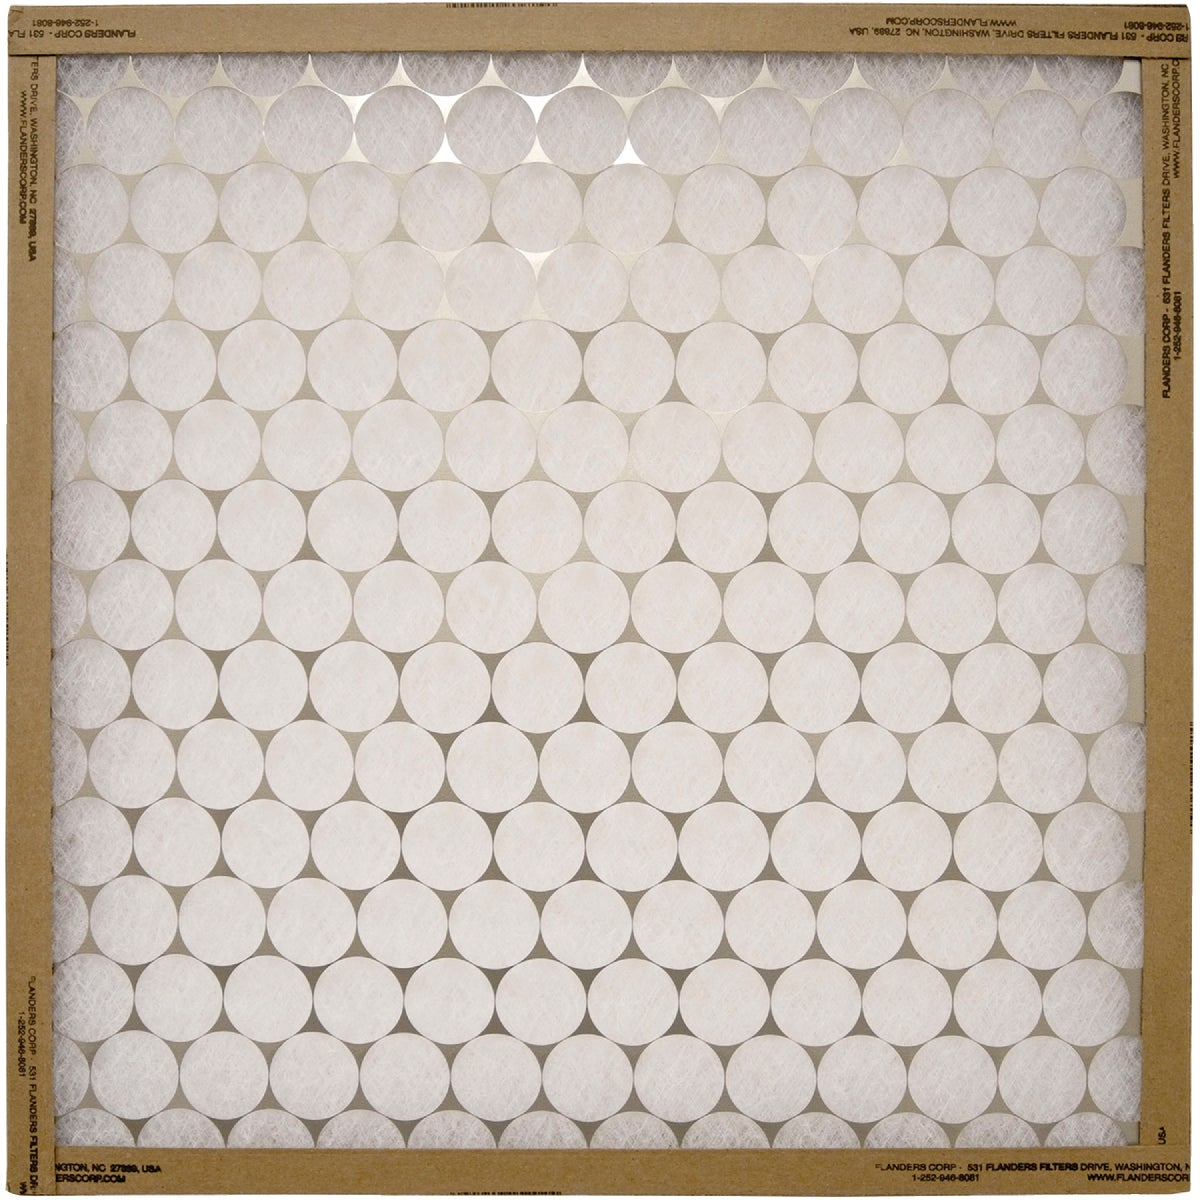 12X12 FURNACE FILTER - 10255.011212 by Flanders Corp